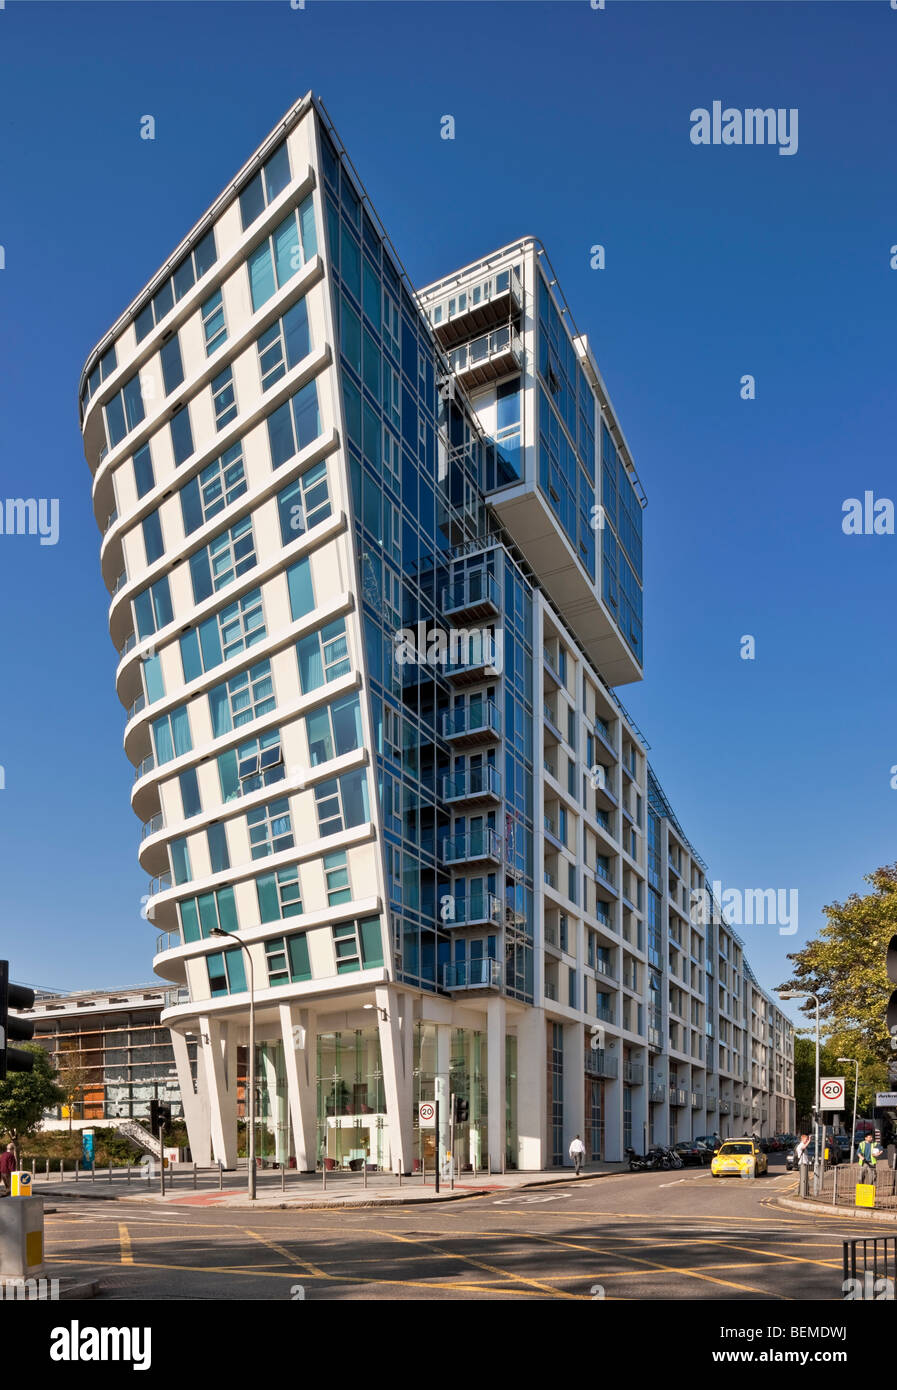 The Visage Apartments and Penthouse in Swiss Cottage, London, UK. - Stock Image